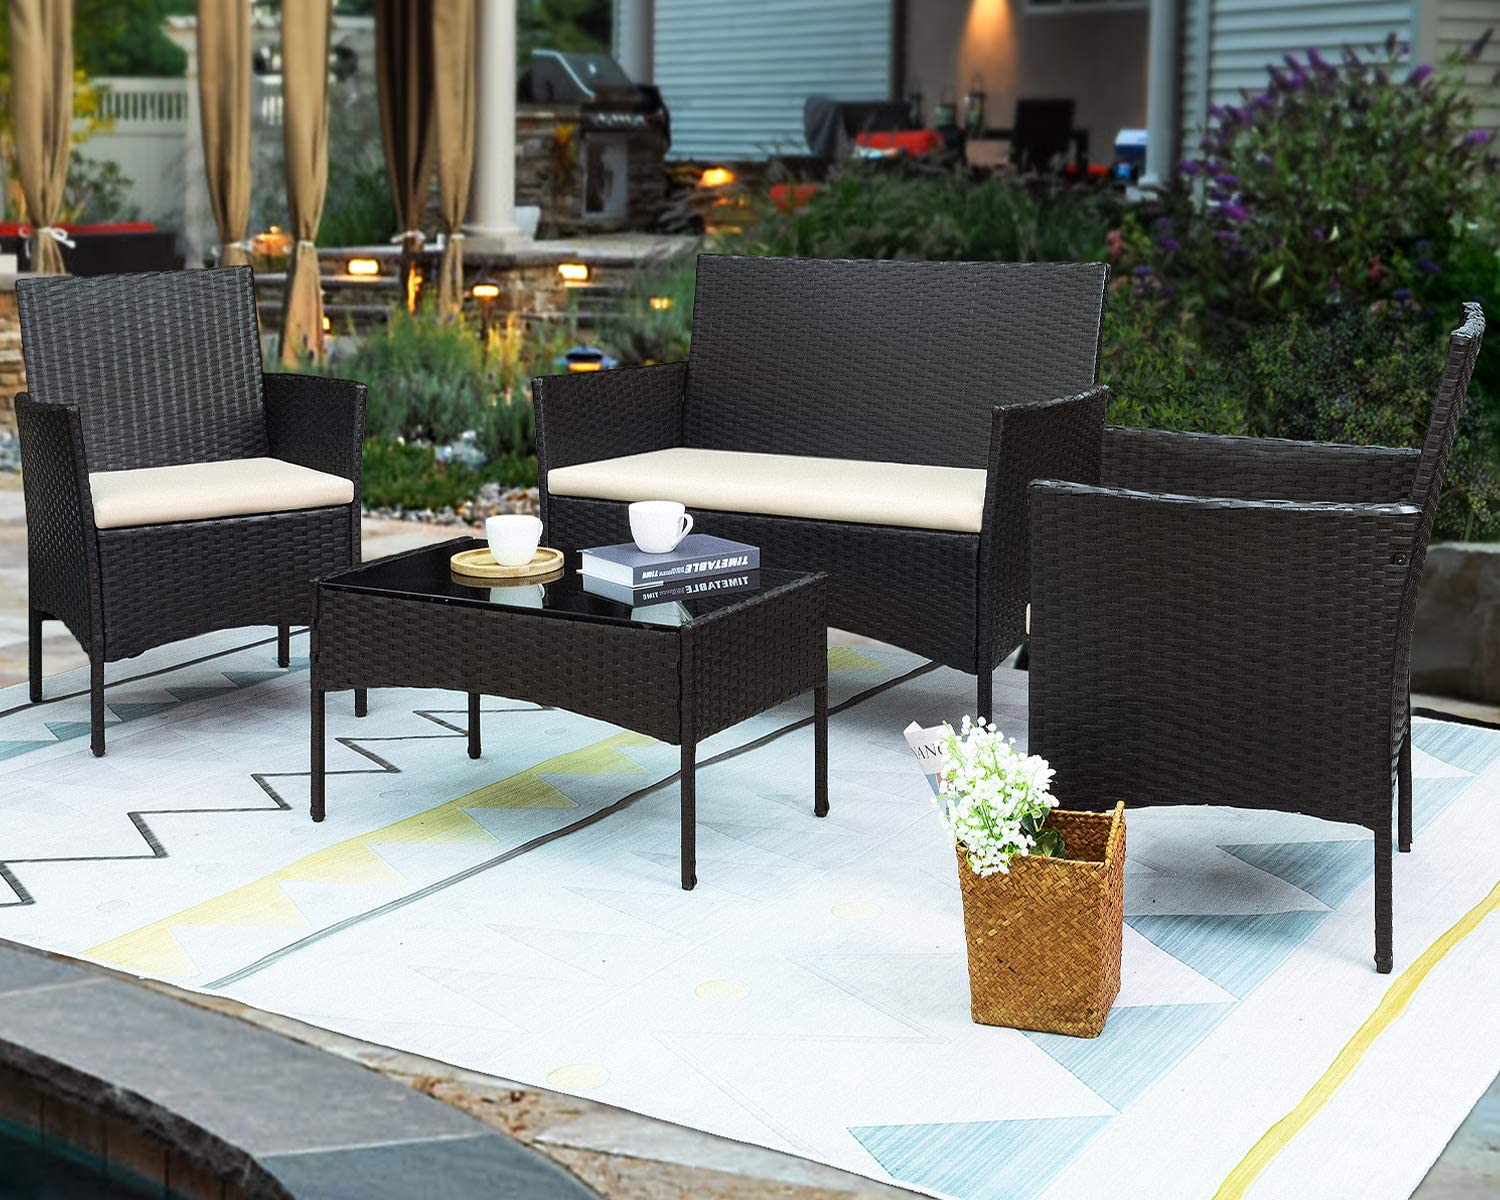 Greesum GS-4RCS0BG 4 Pieces Patio Outdoor Rattan Furniture Sets, Black and Beige